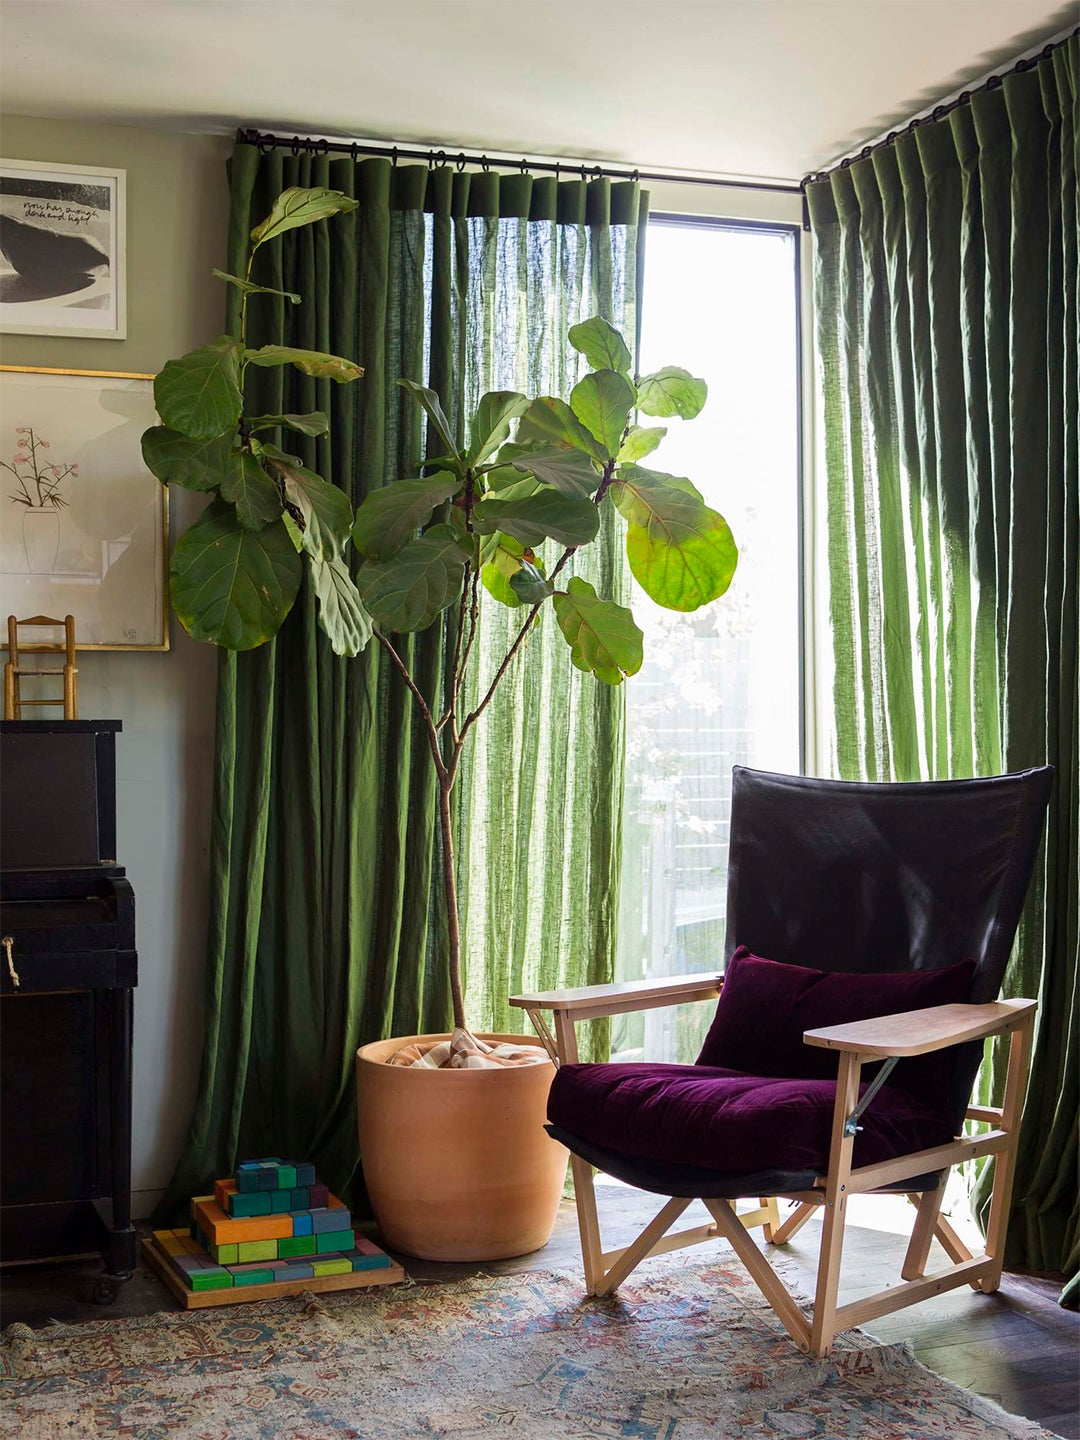 green curtains with a plum chair in a living room